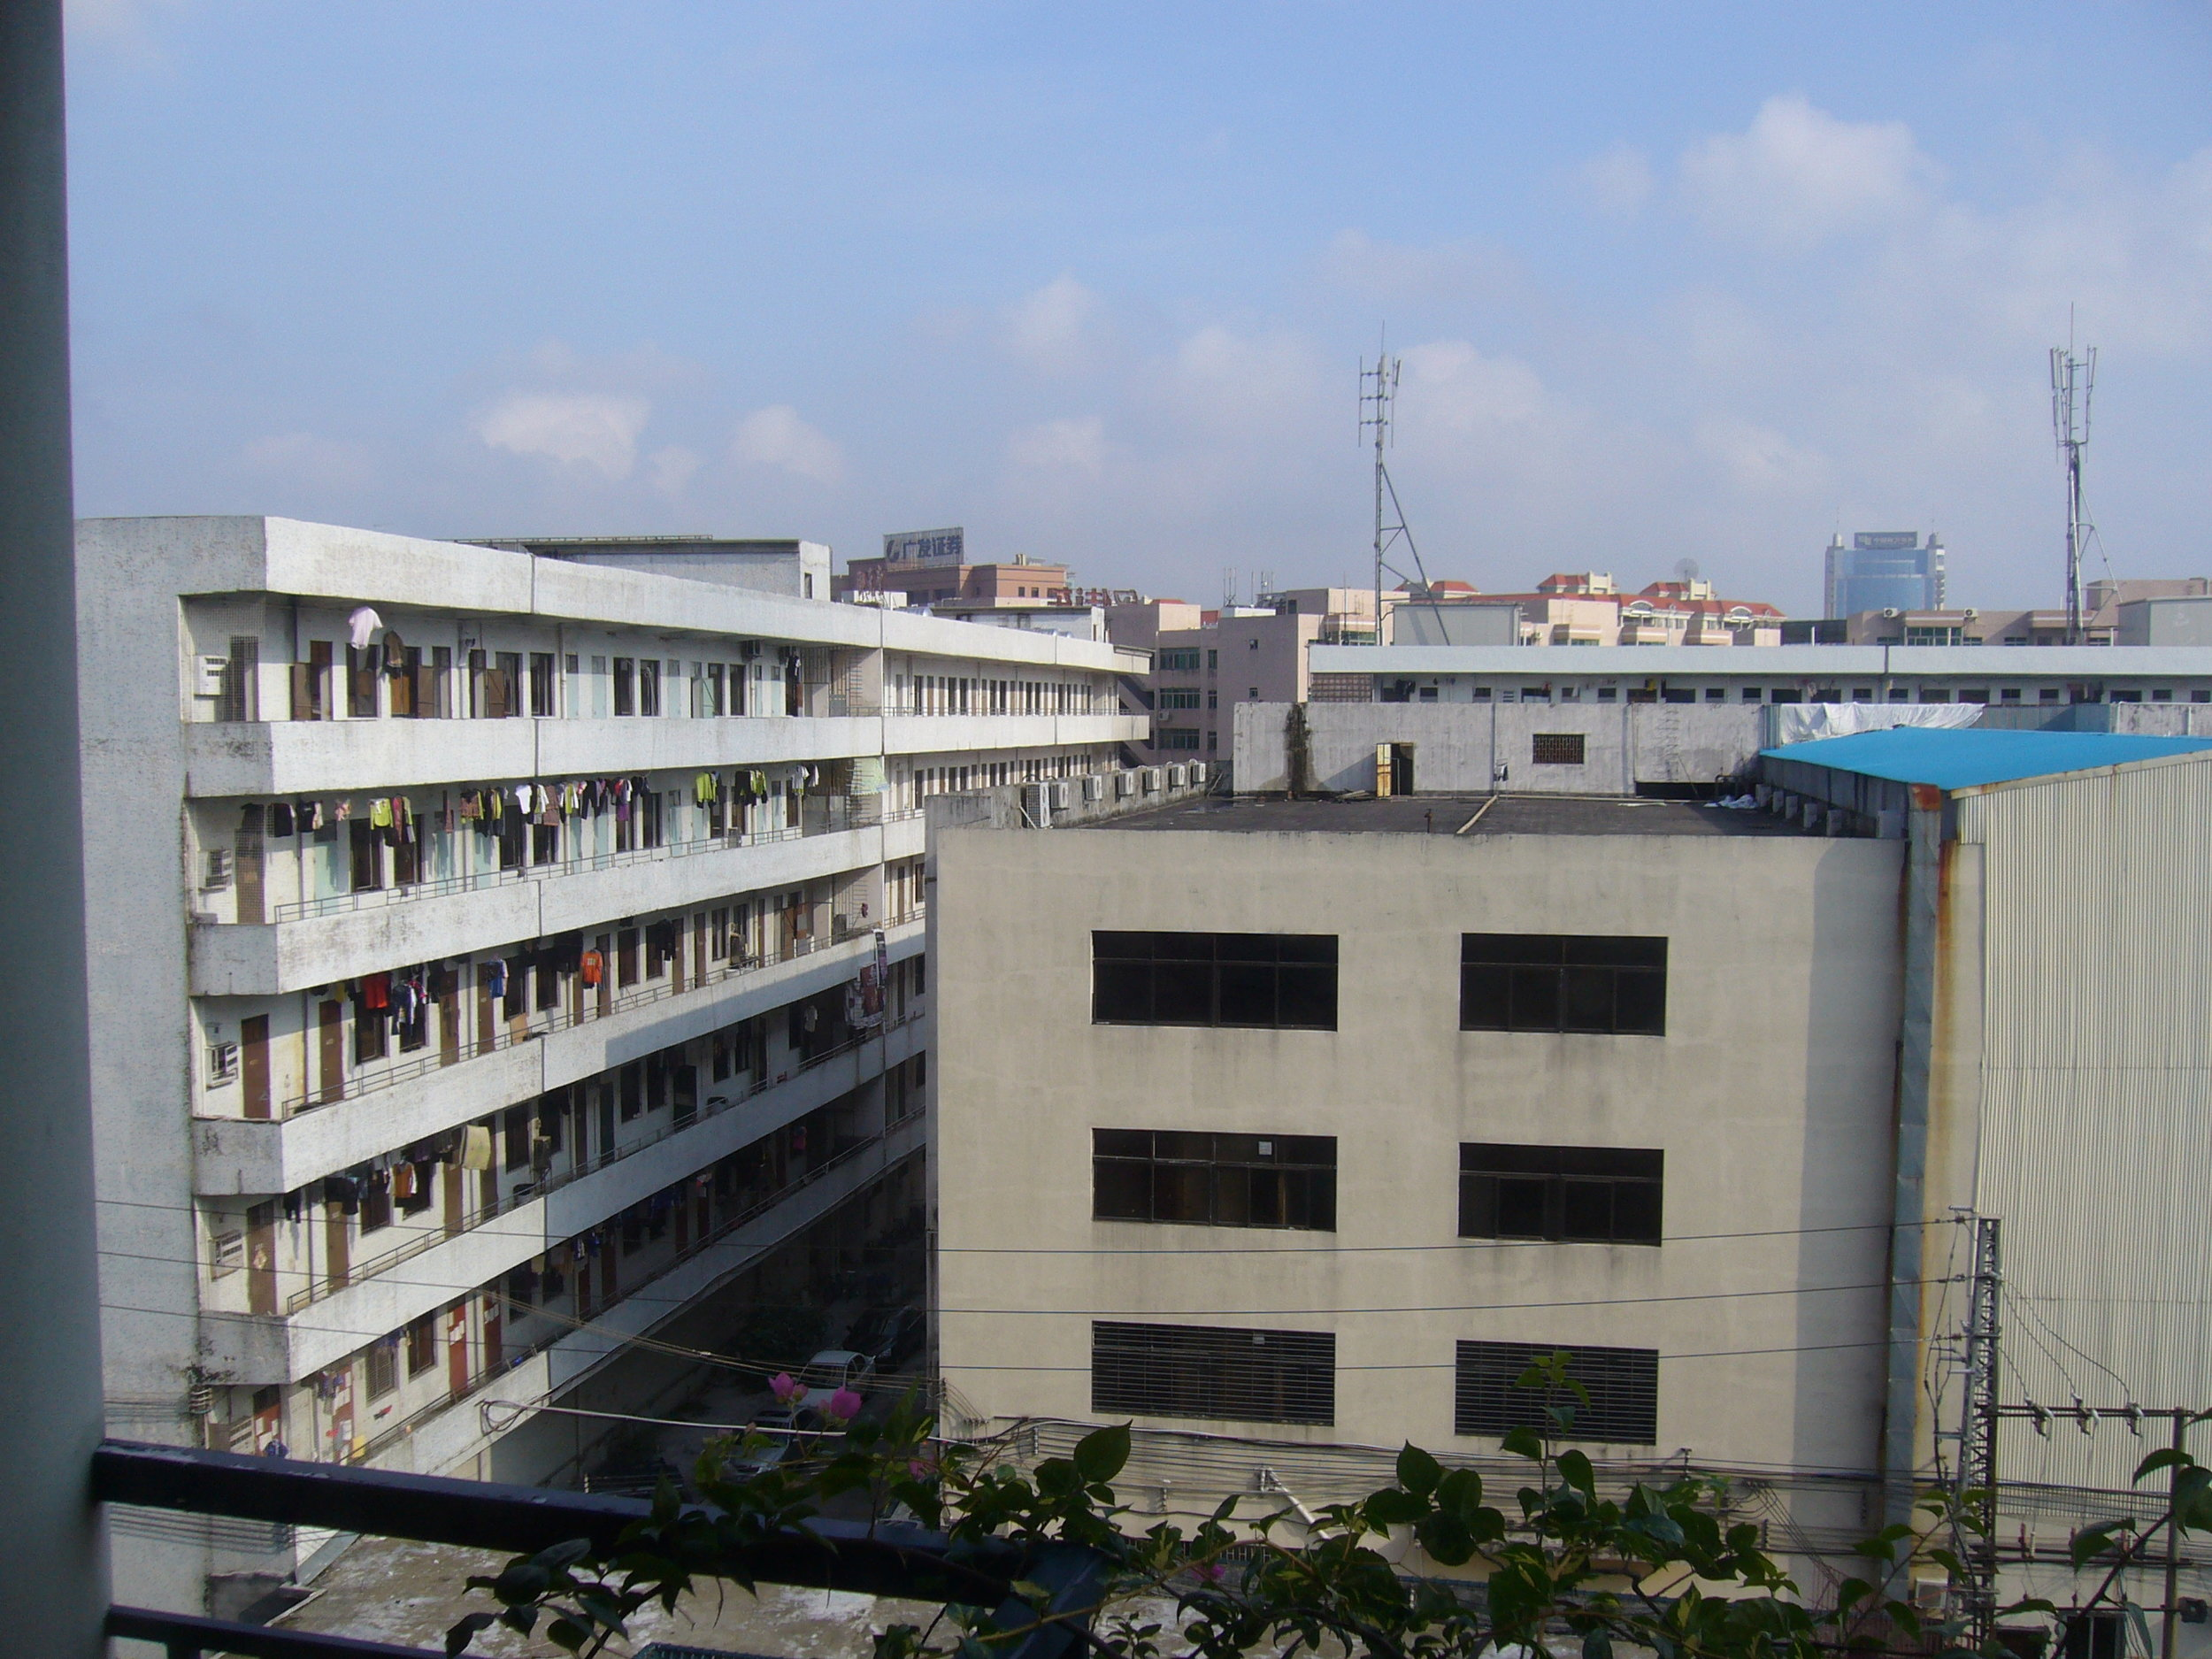 Shenzhen factories and dormitories